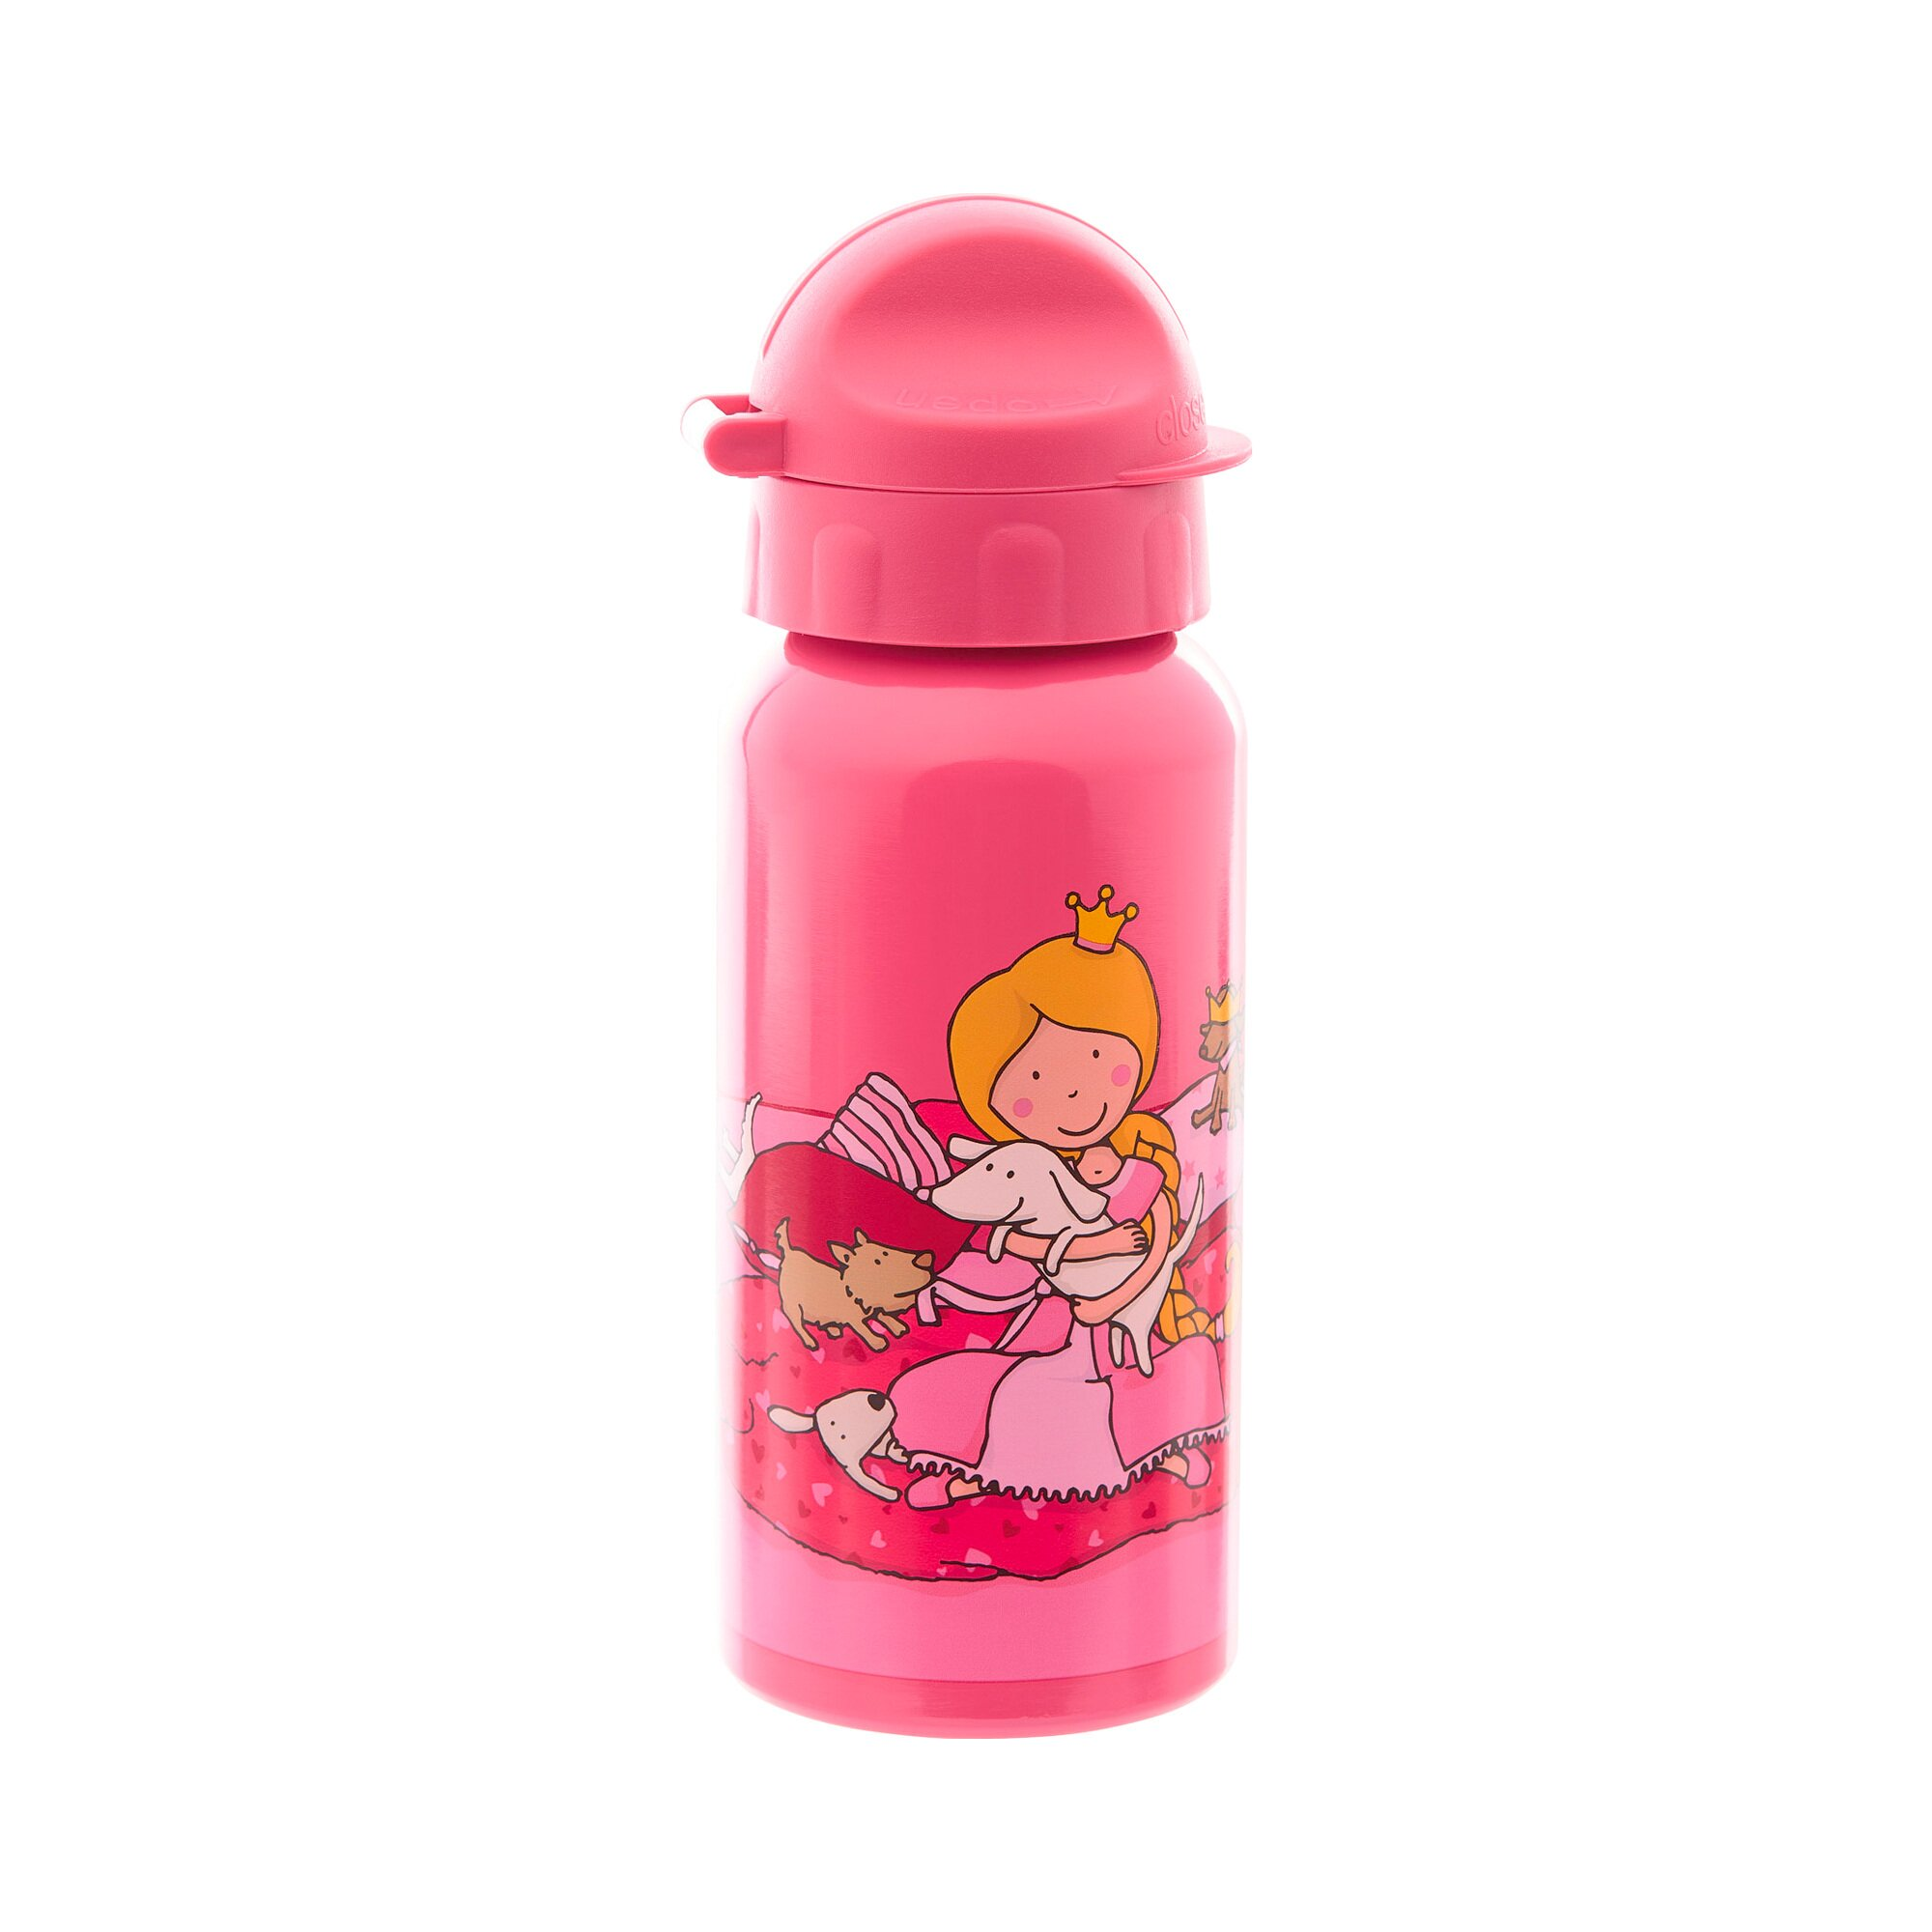 Pinky Queeny Trinkflasche Pinky Queeny